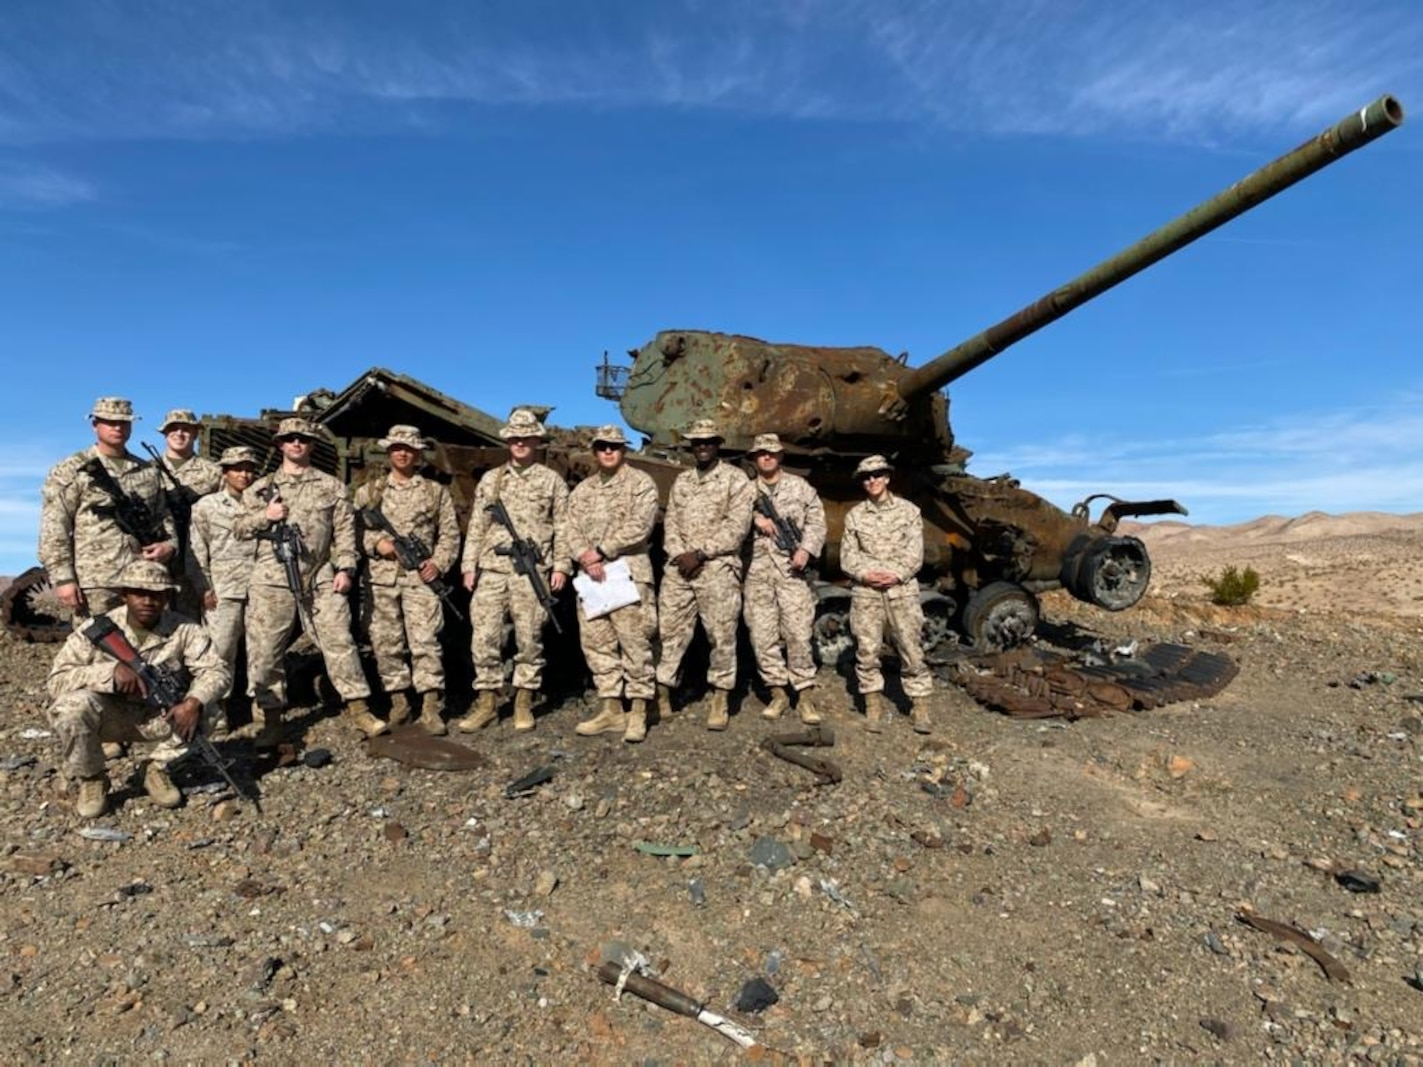 CLB-5 leadership conducts reconnaissance at ITX 2-20.